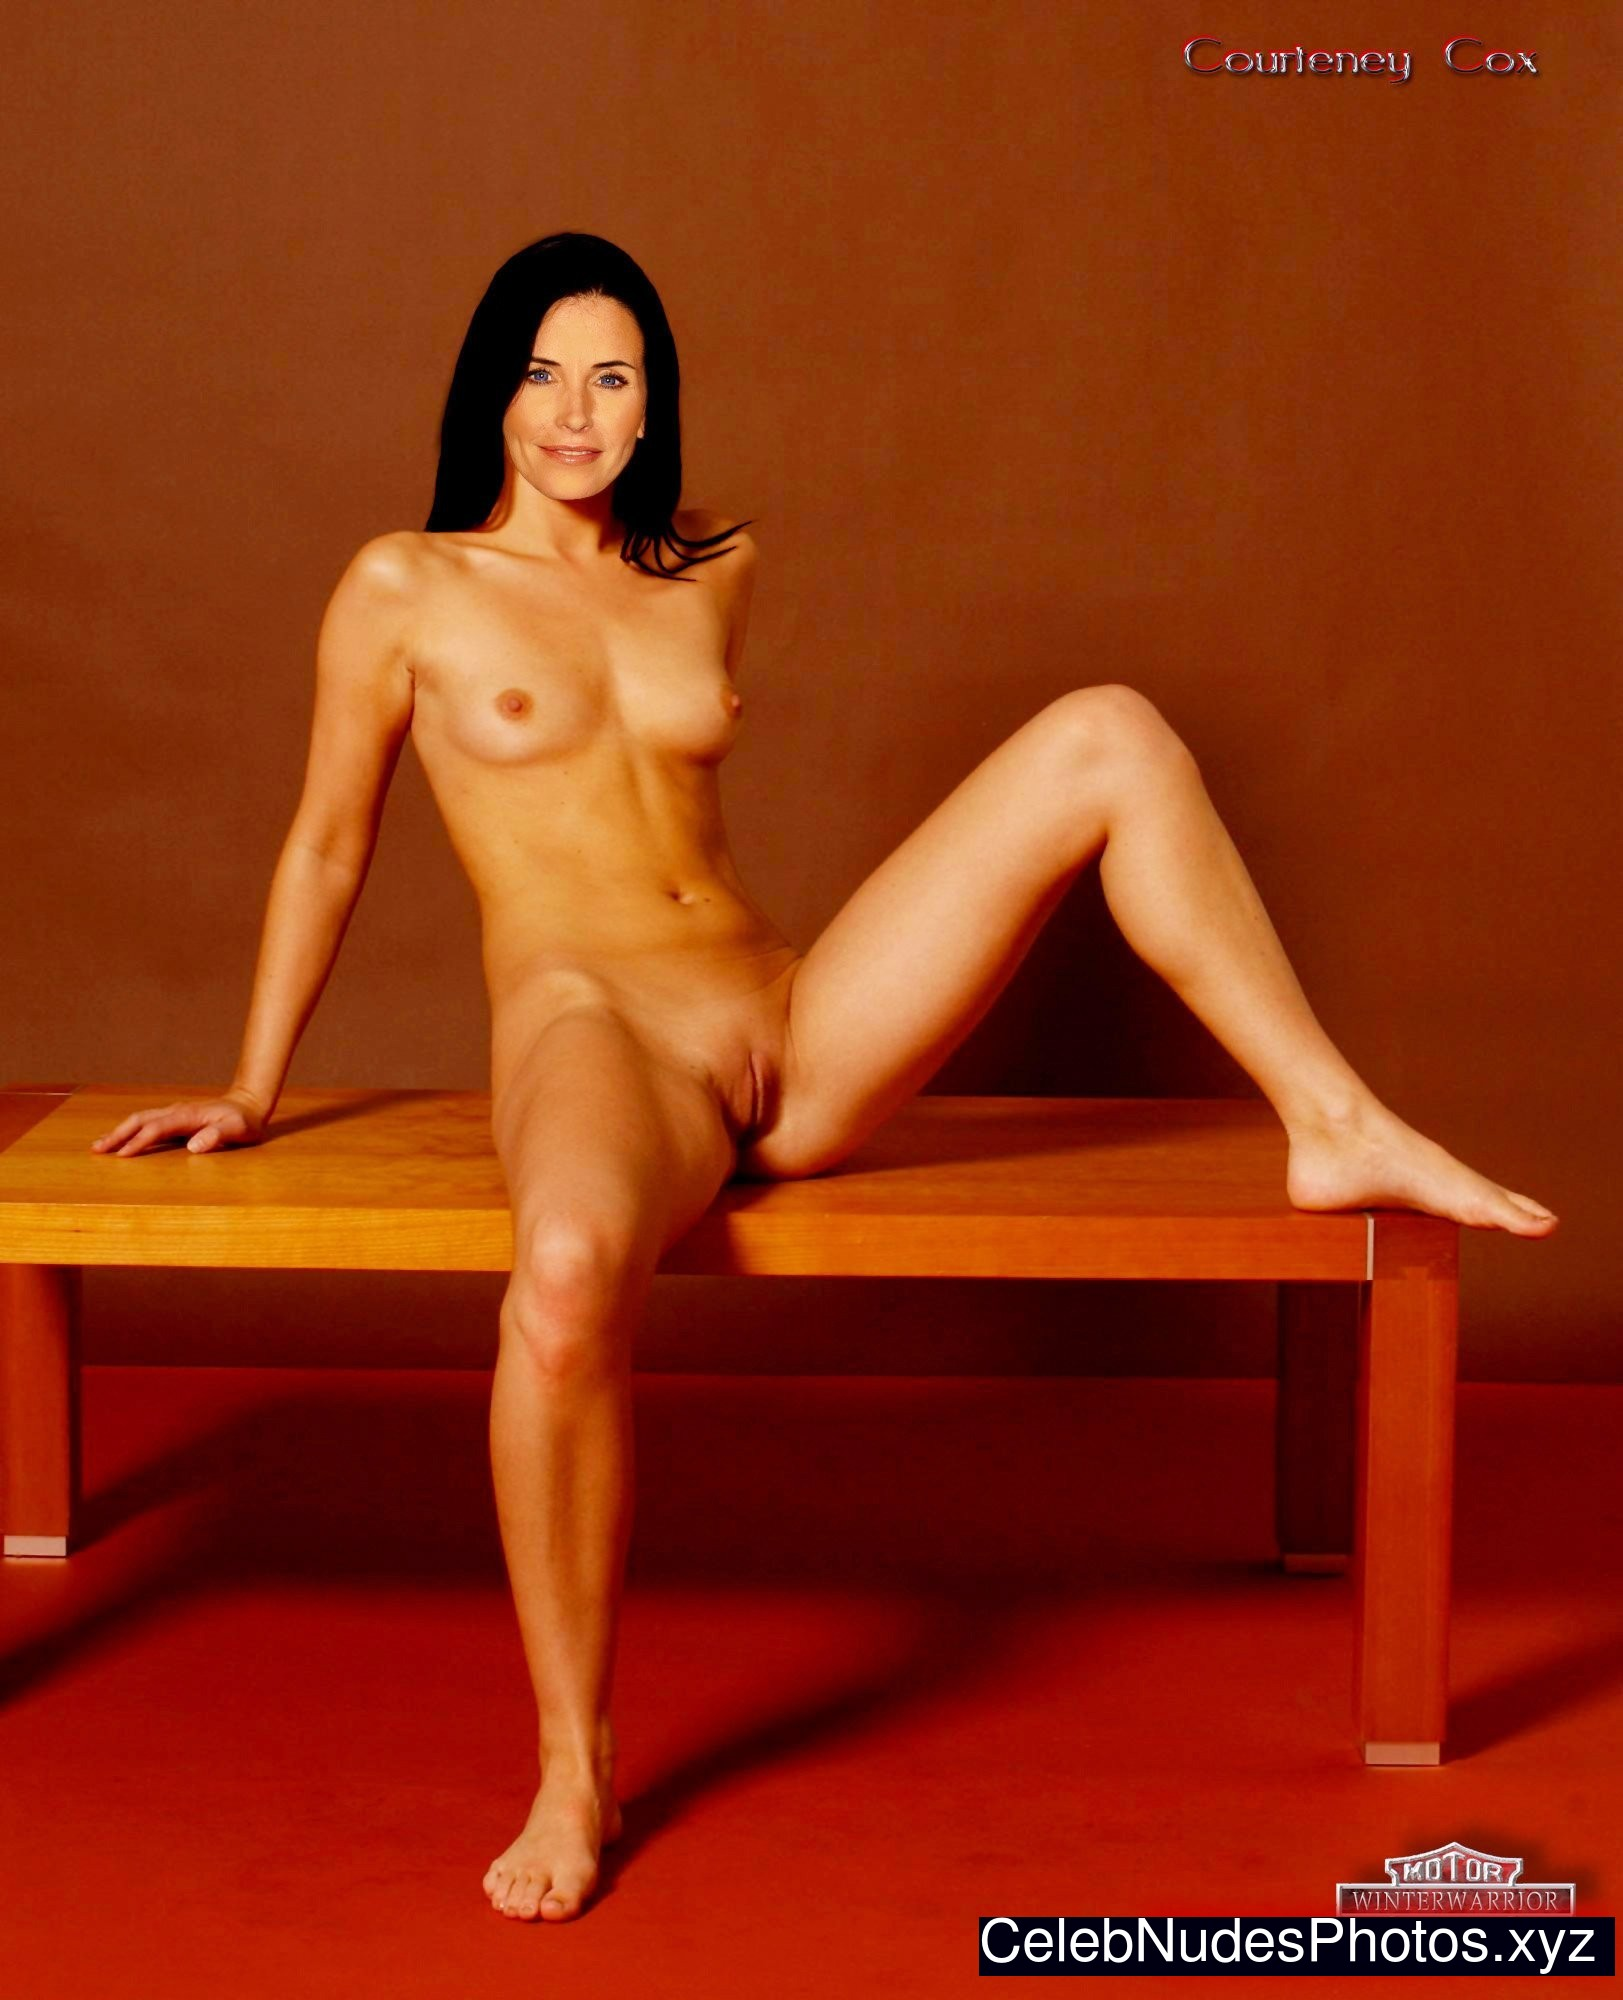 courteney cox naked